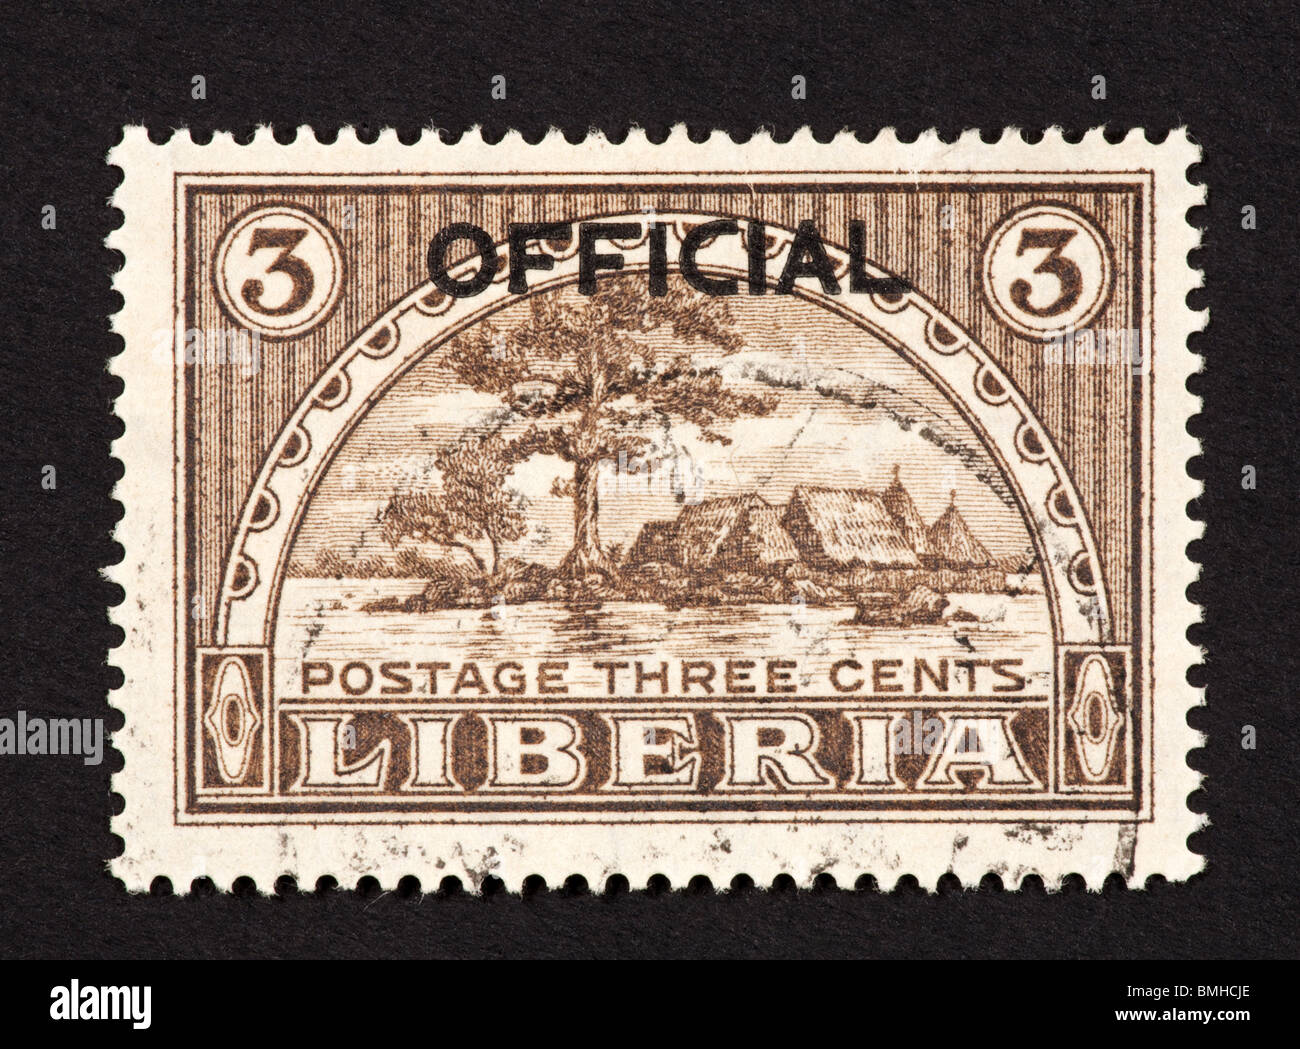 Postage stamp from Liberia depicting Providence Island and Monrovia Harbor - Stock Image